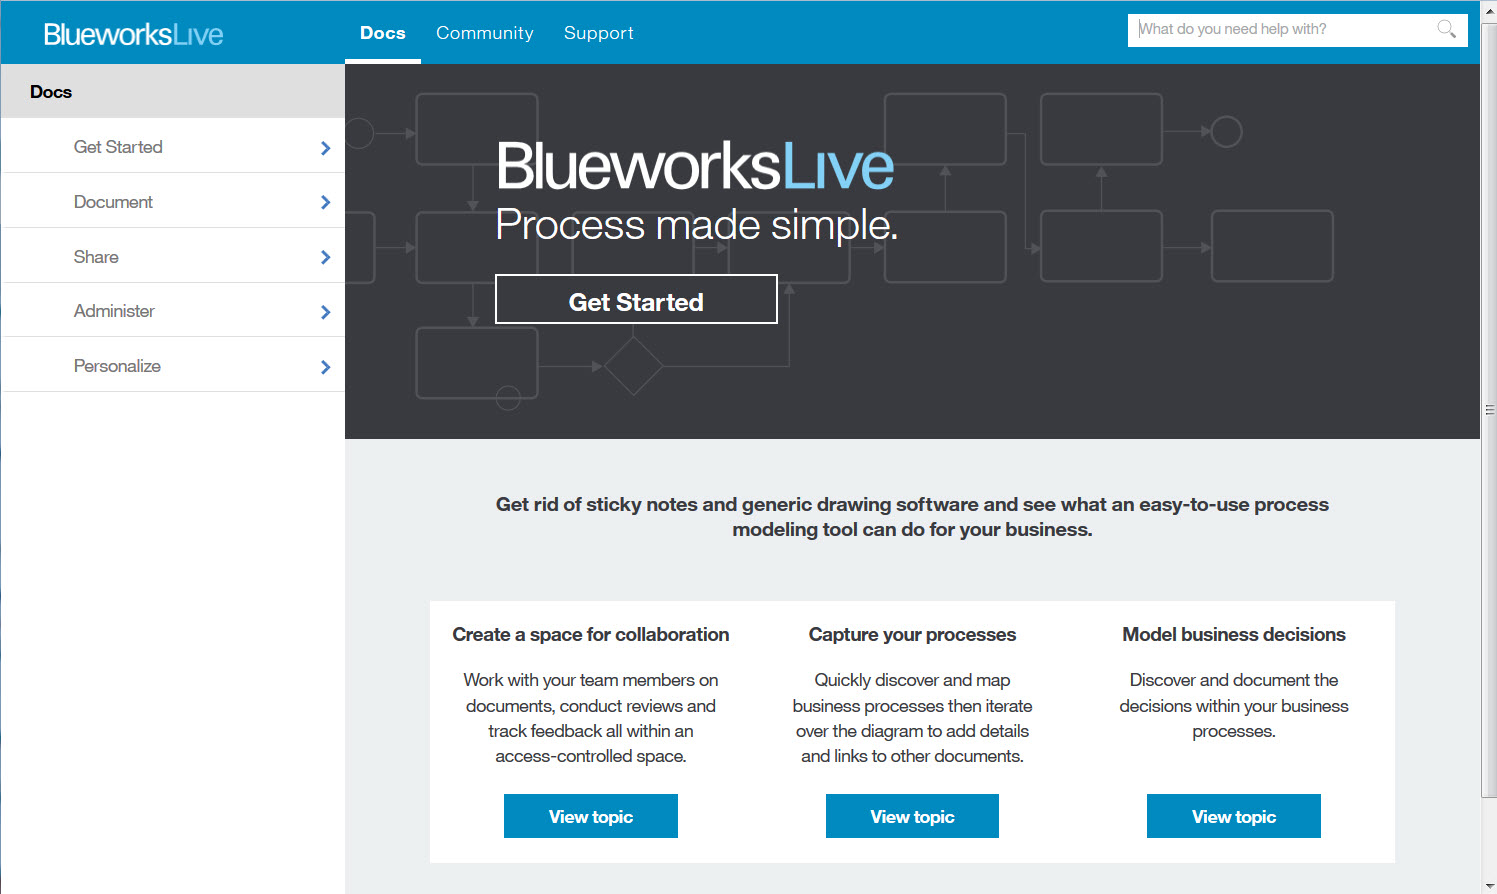 Ibm blueworks live blogs this section contains info about setting notification and user preferences following artifacts pinning a start page and things like this baditri Images